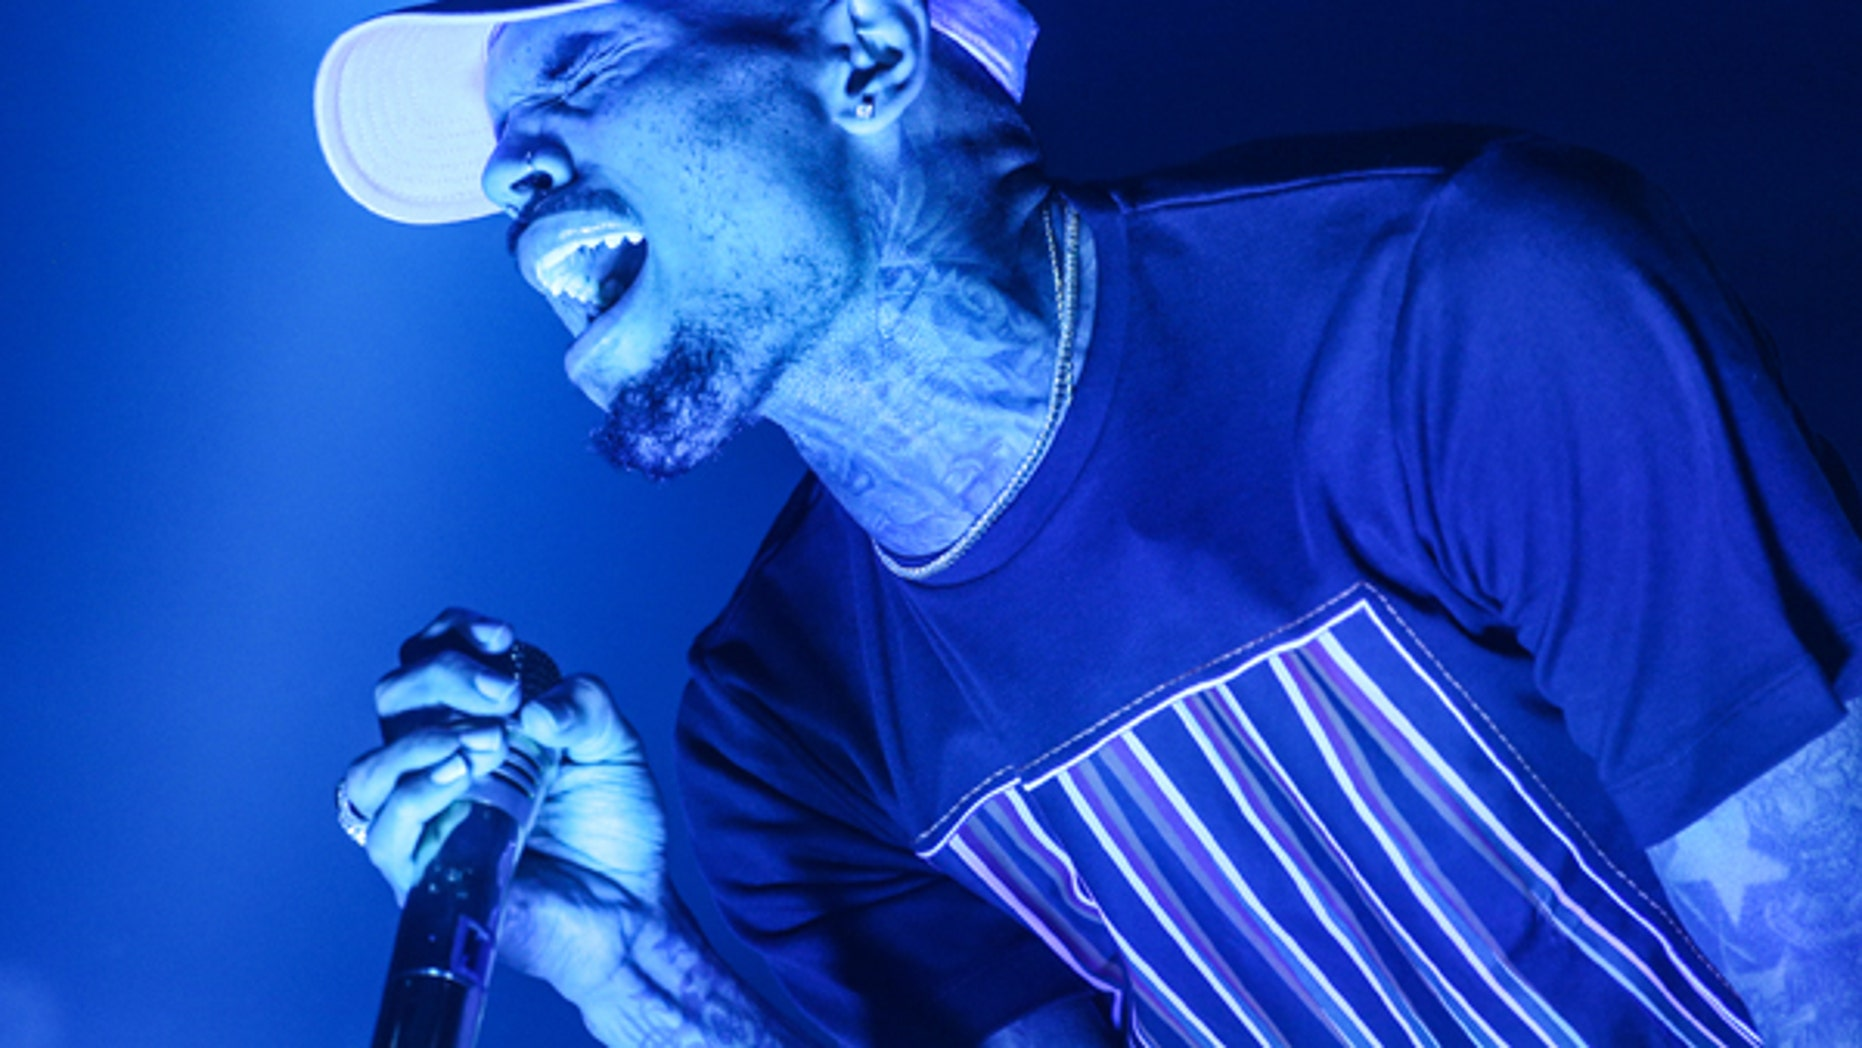 Chris Brown performs at the Hollywood Palladium in Los Angeles.